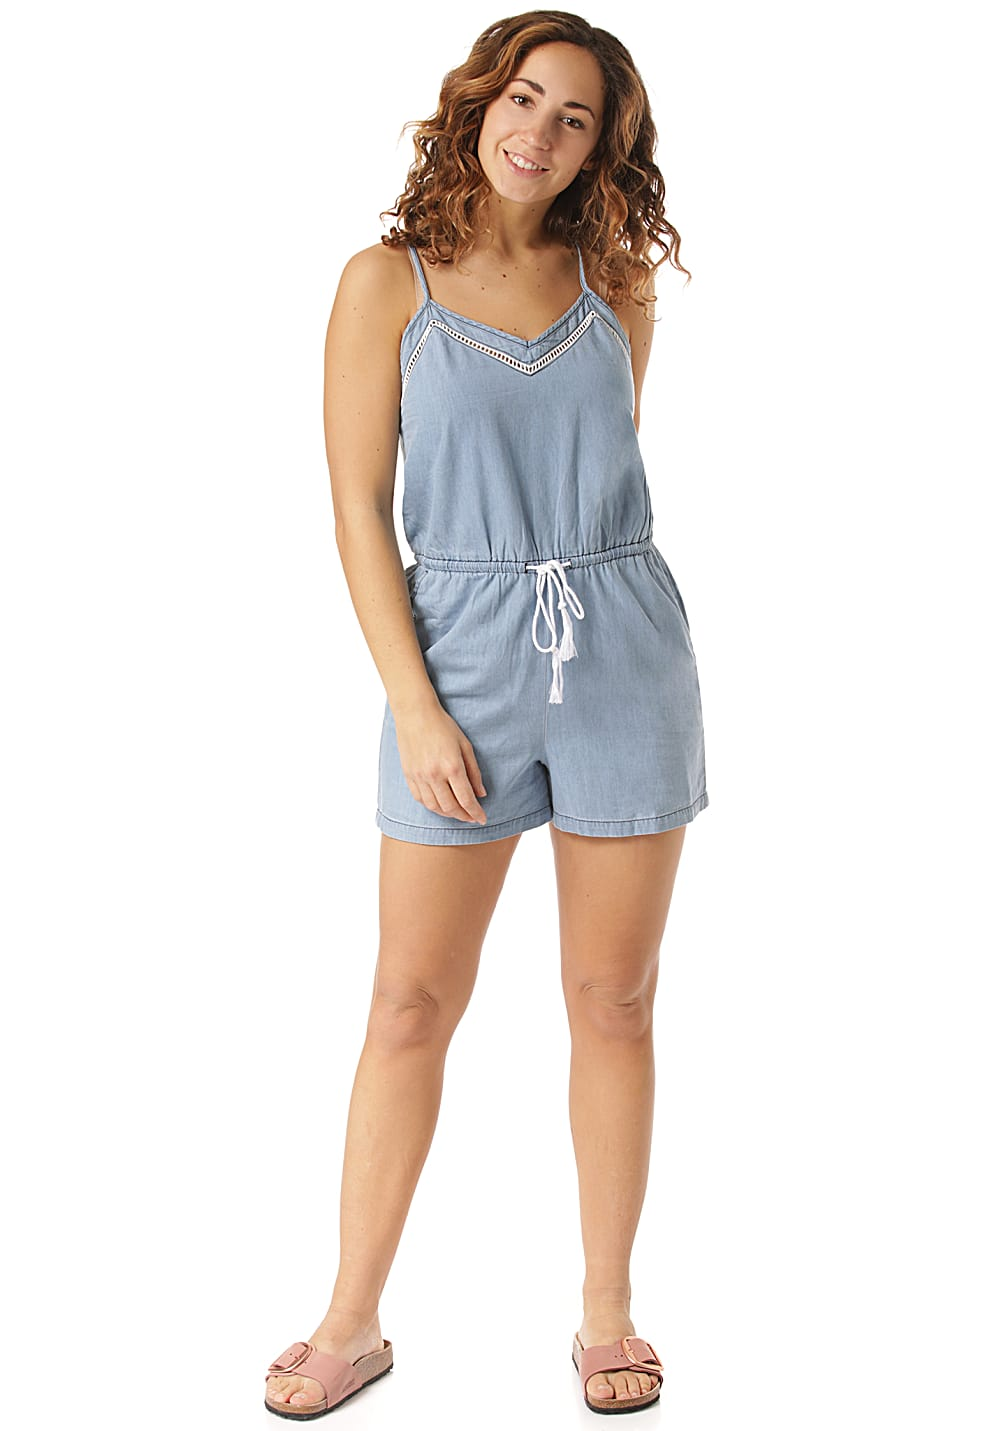 Hosen - O'Neill Denim Playsuit Overall für Damen Blau  - Onlineshop Planet Sports